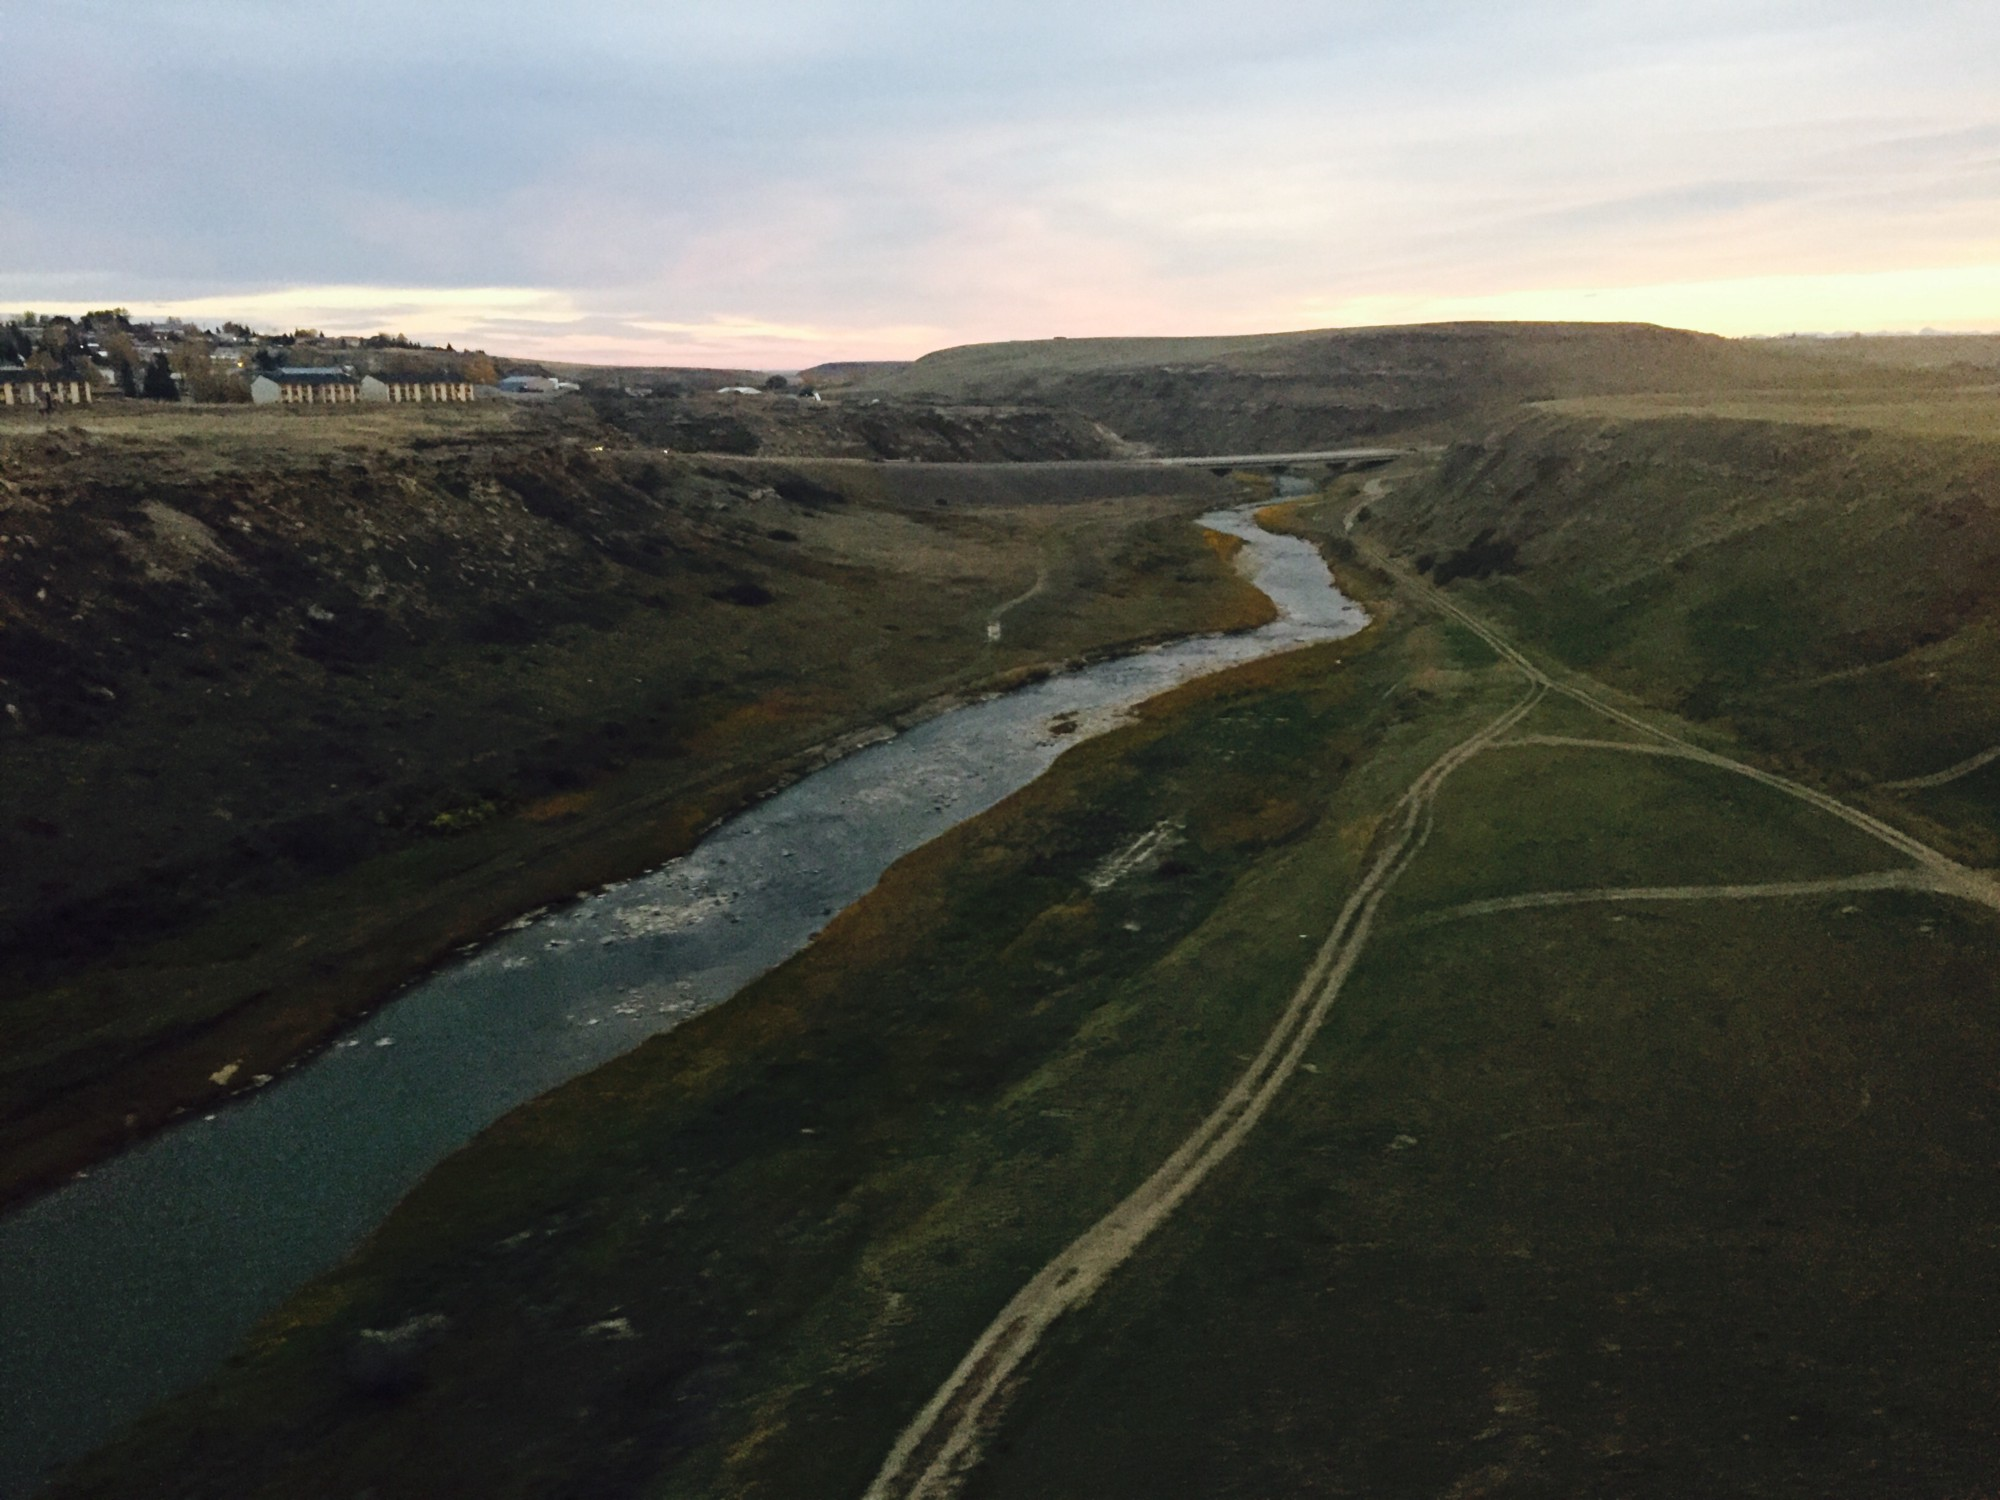 Desire lines along the creek leading to a road. The creek can also be considered a natural path, as the water has chosen the path of least resistance. Photo by Jessie Lacey taken from a train making its way through Cut Bank, Montana.